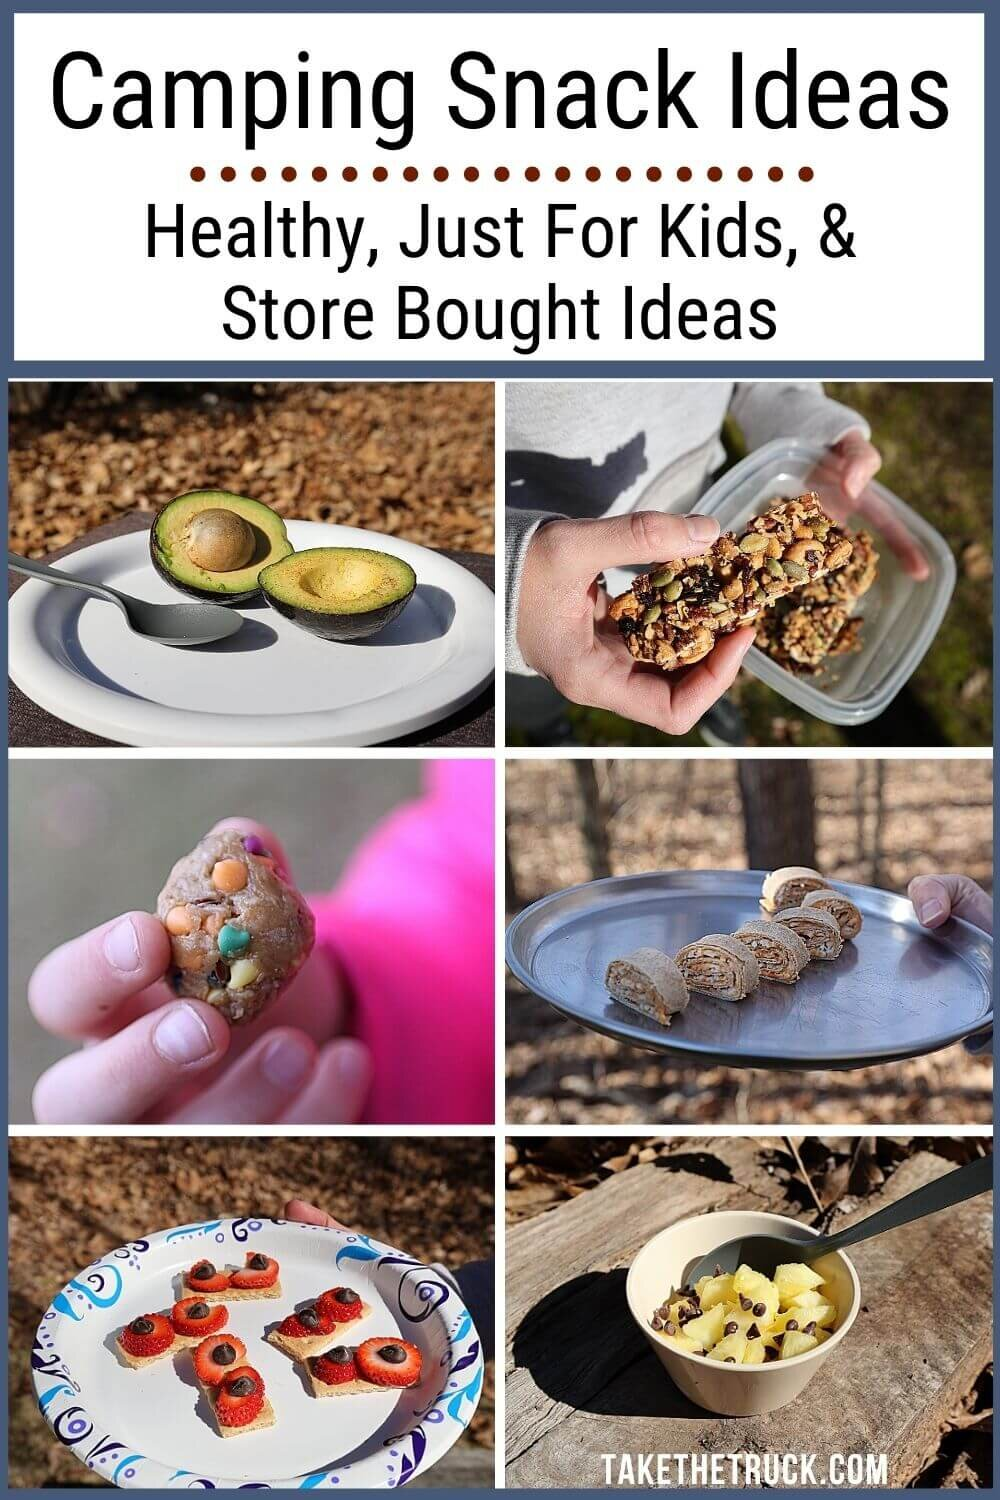 Over 30 easy camping snacks divided into: simple camping snacks for kids, camping snacks to buy, and healthy camping snacks for adults and kids. These are all simple camping snack ideas!